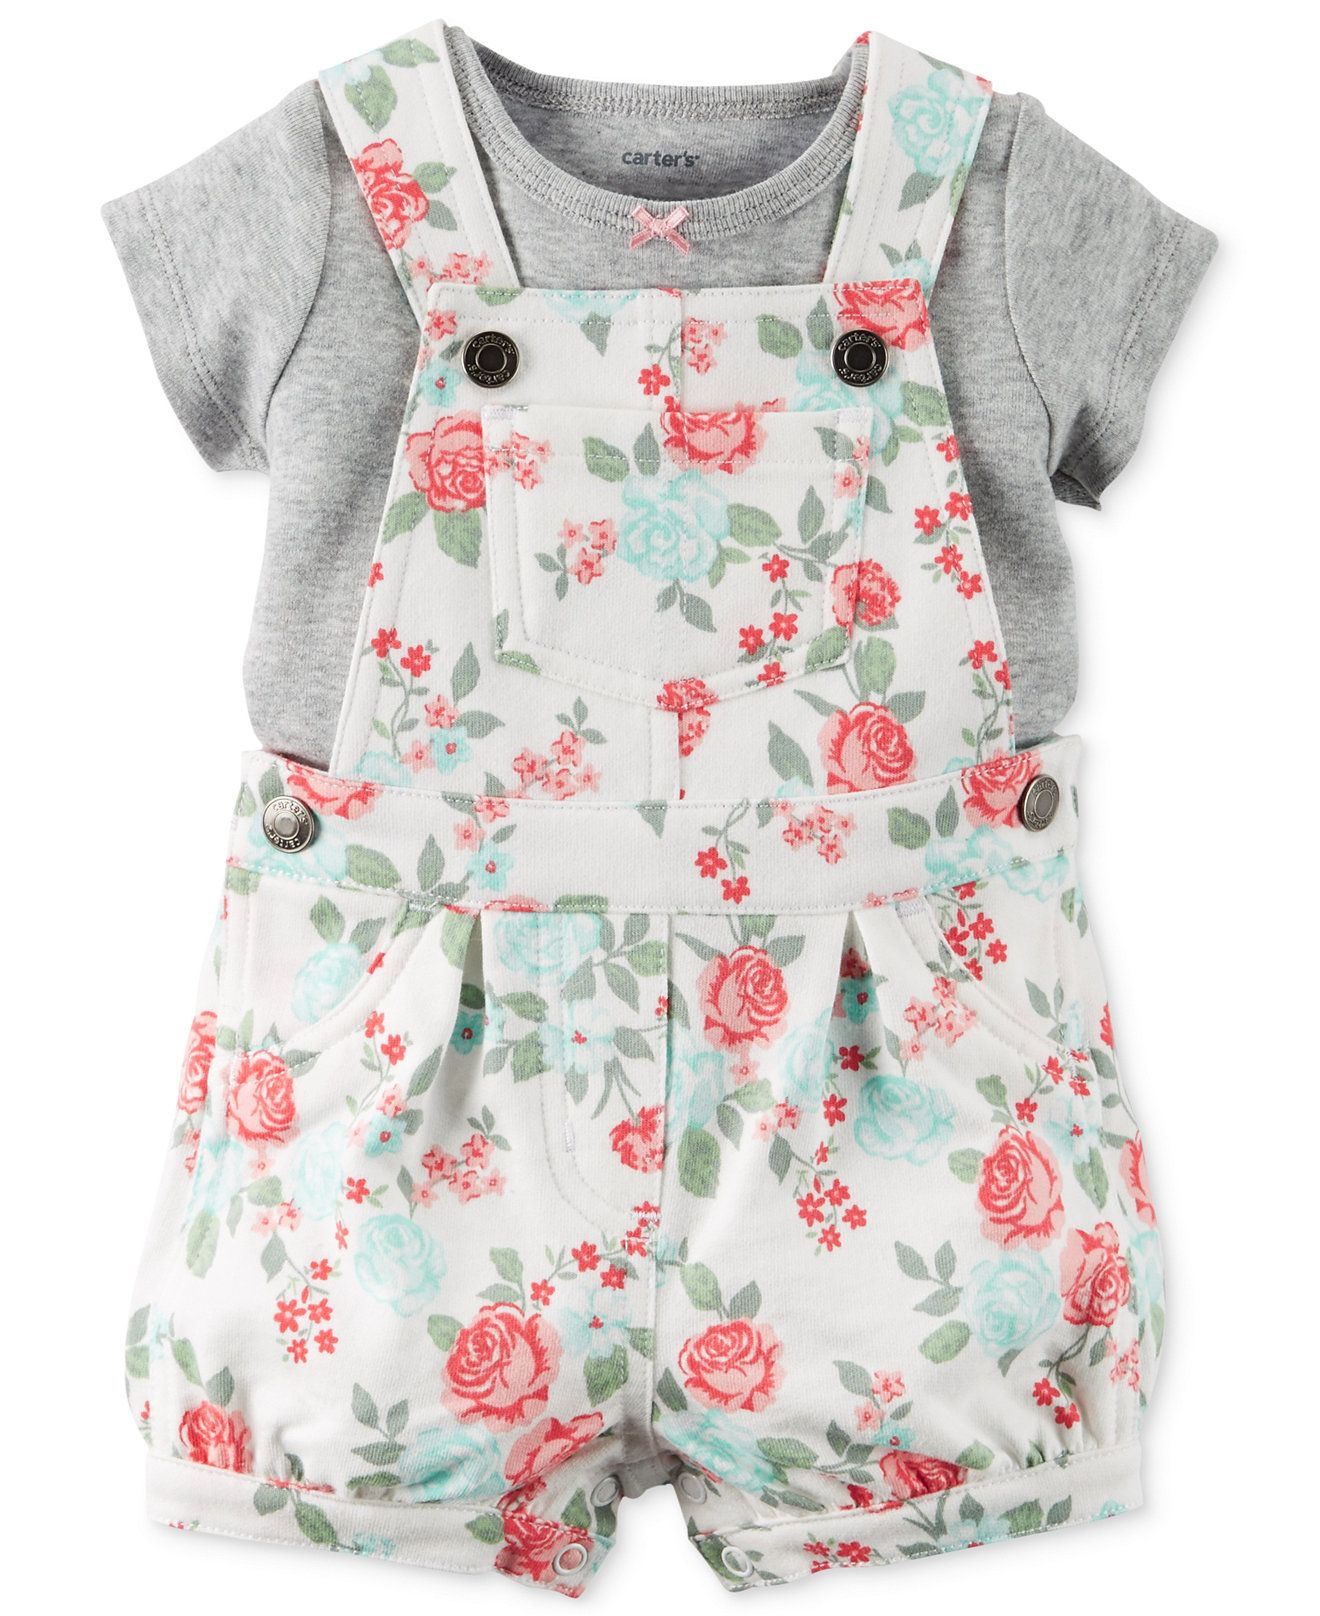 514f83dfc Carter s Baby Girls  2-Piece Gray T-Shirt   Rose-Print Shortall Set ...